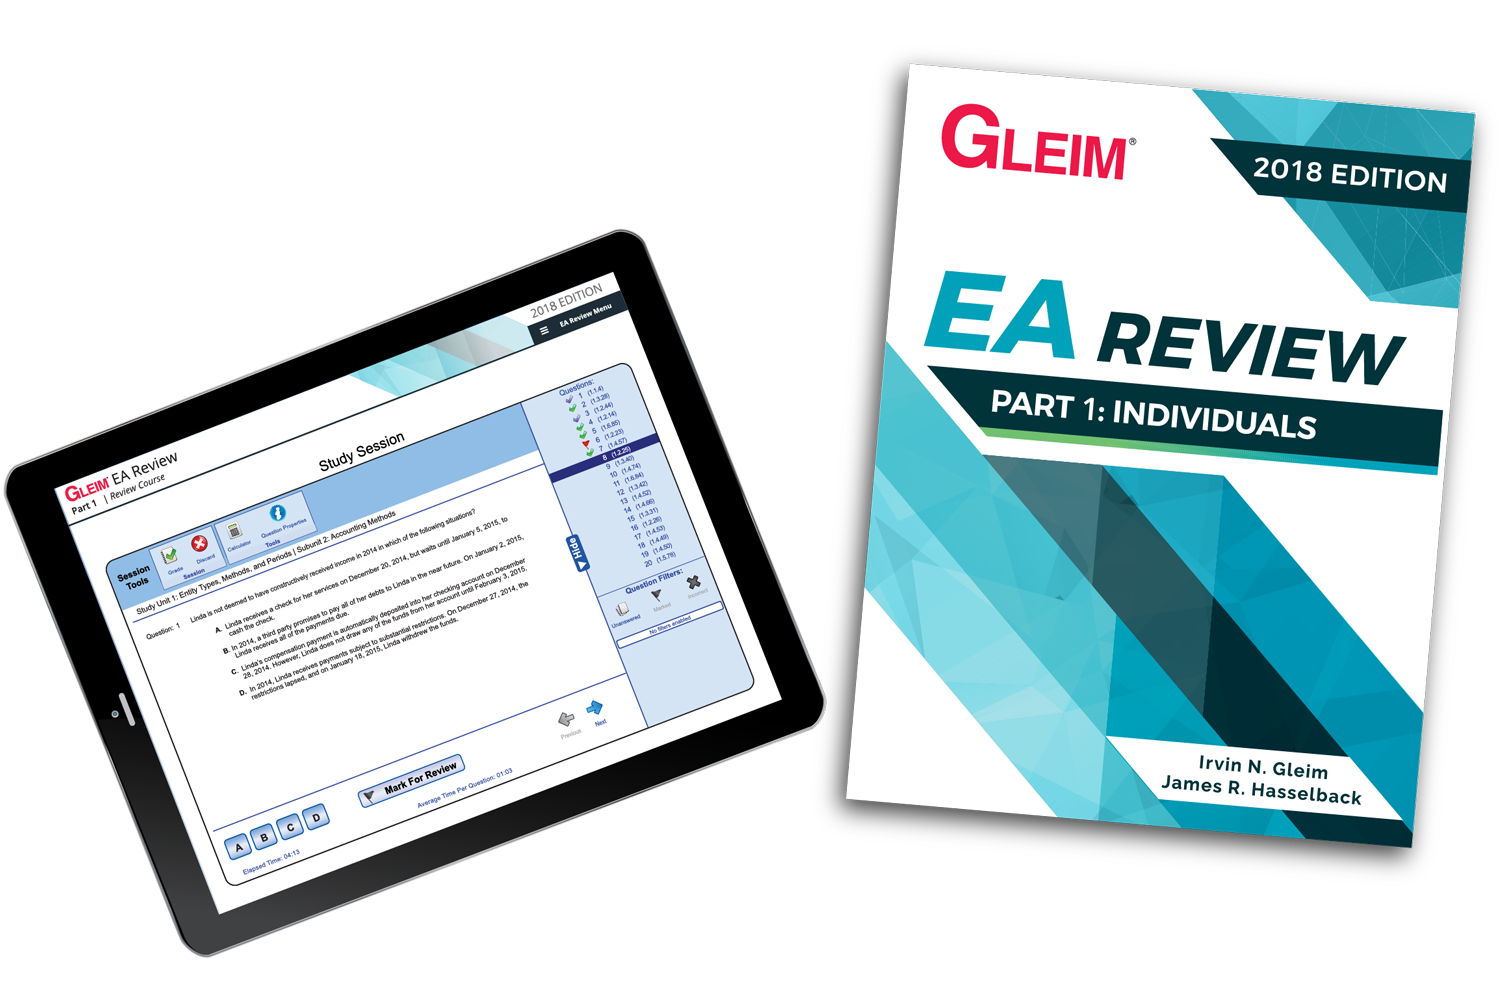 Gleim EA Review Book & Test Prep Online – Part 1 (2018) - #OAB3861S